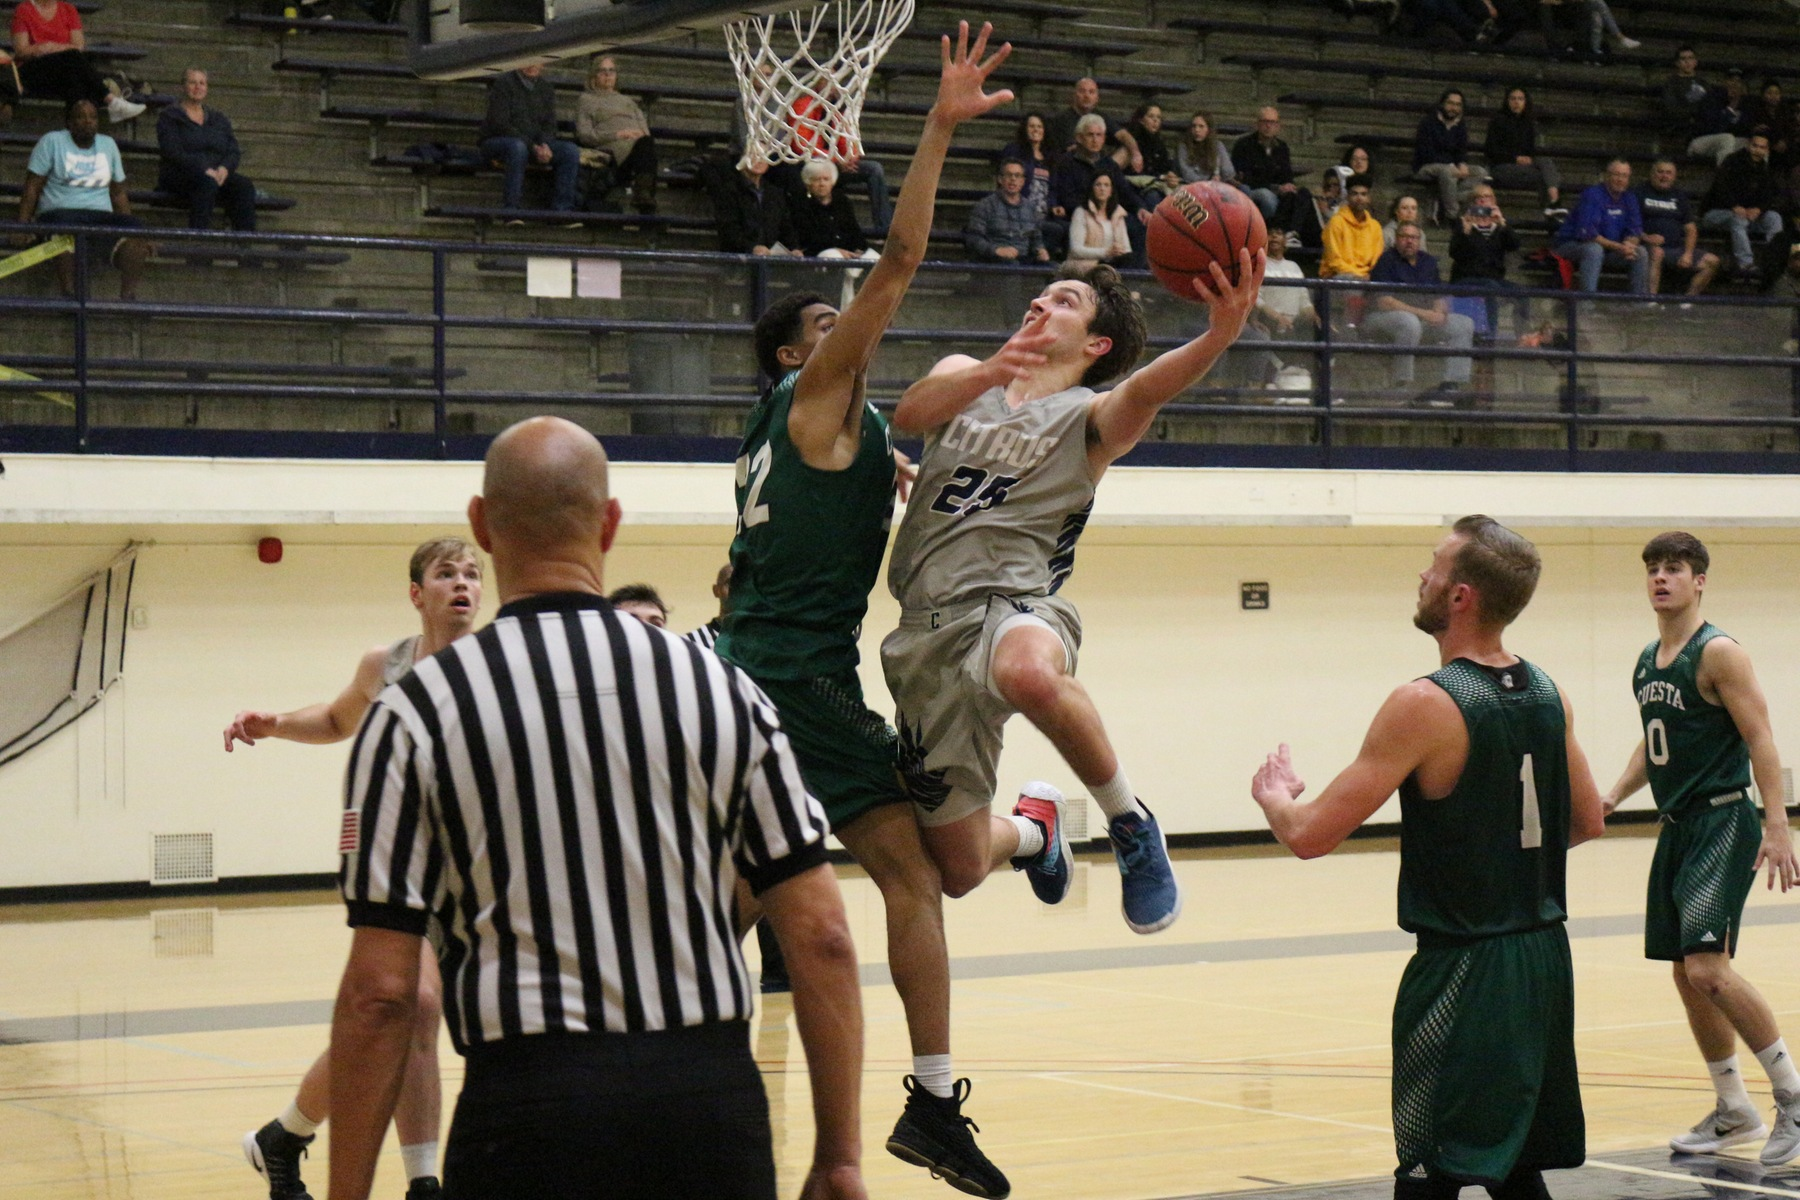 Sam Gagliardi attacks the basket. image: Richard Miranda, II